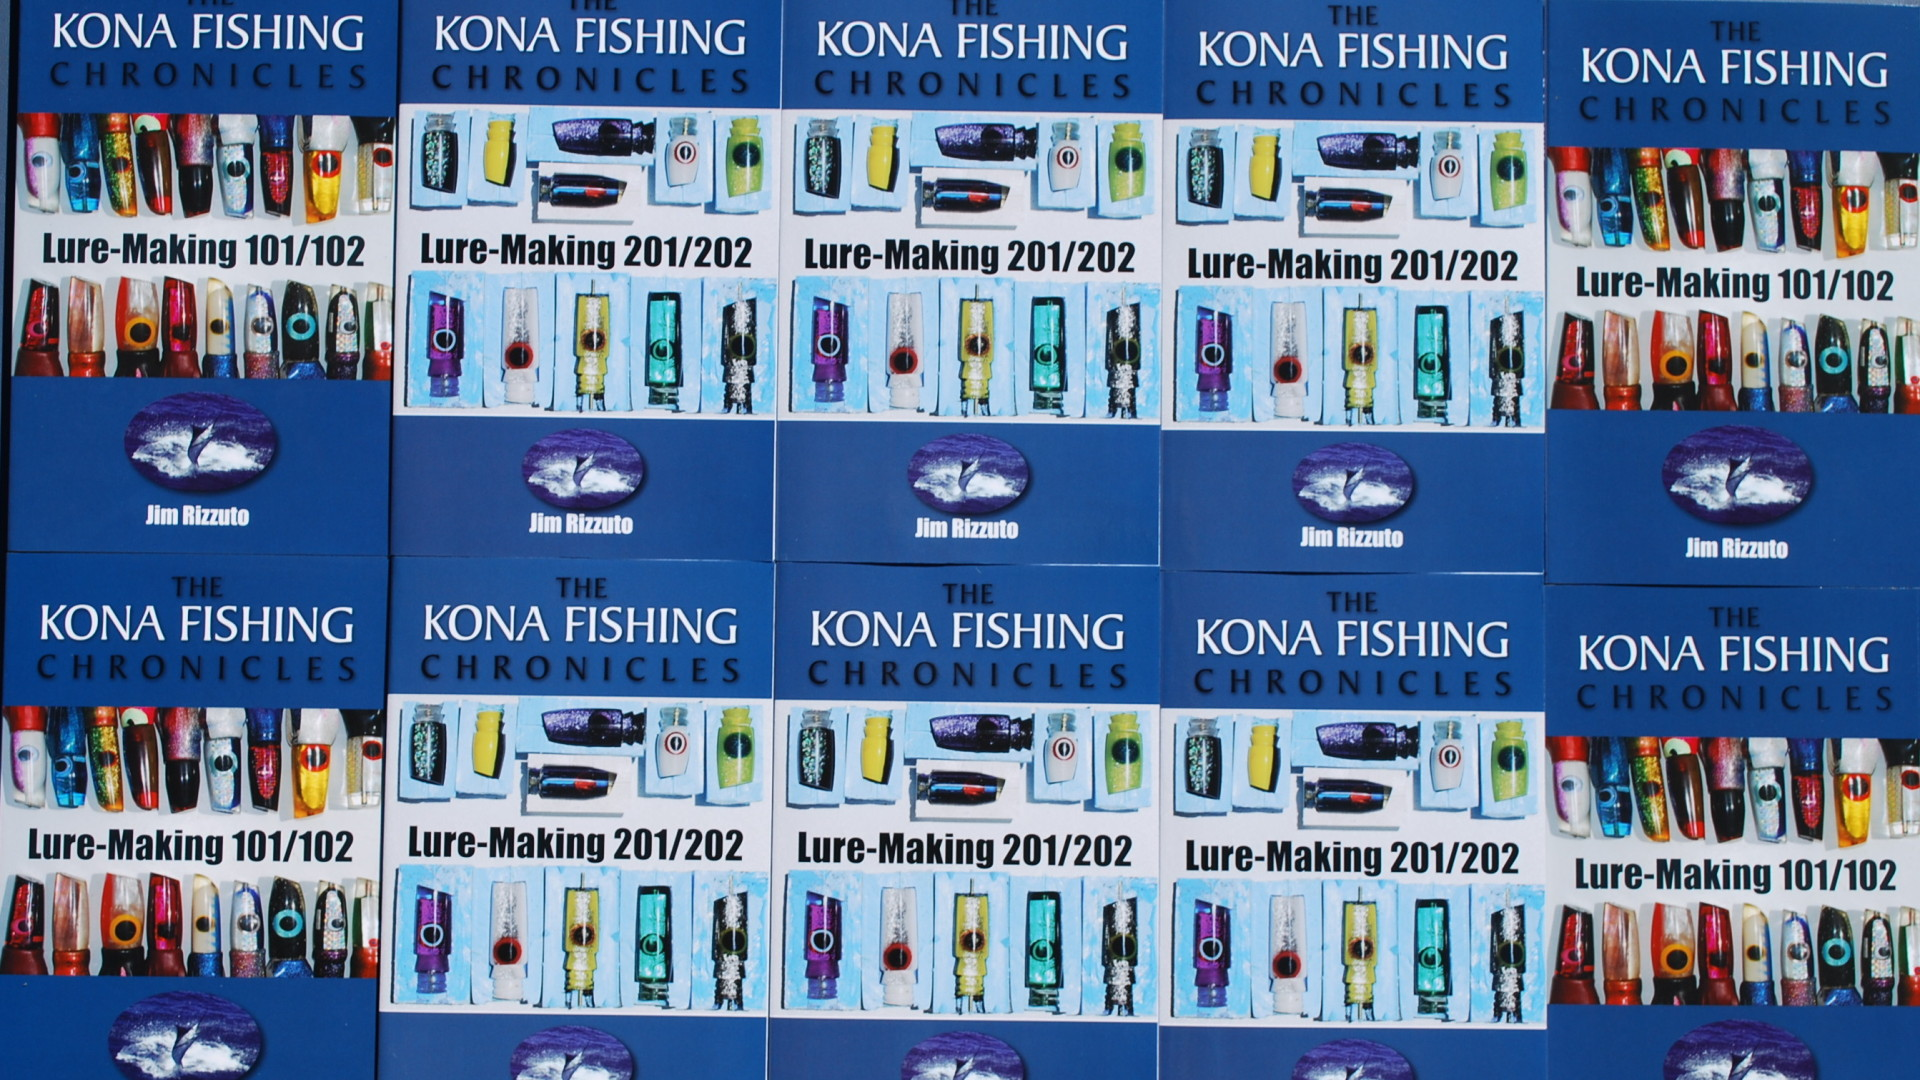 Lure-Making 101 and 201. Kona Fishing Chronicles books by Jim Rizzuto